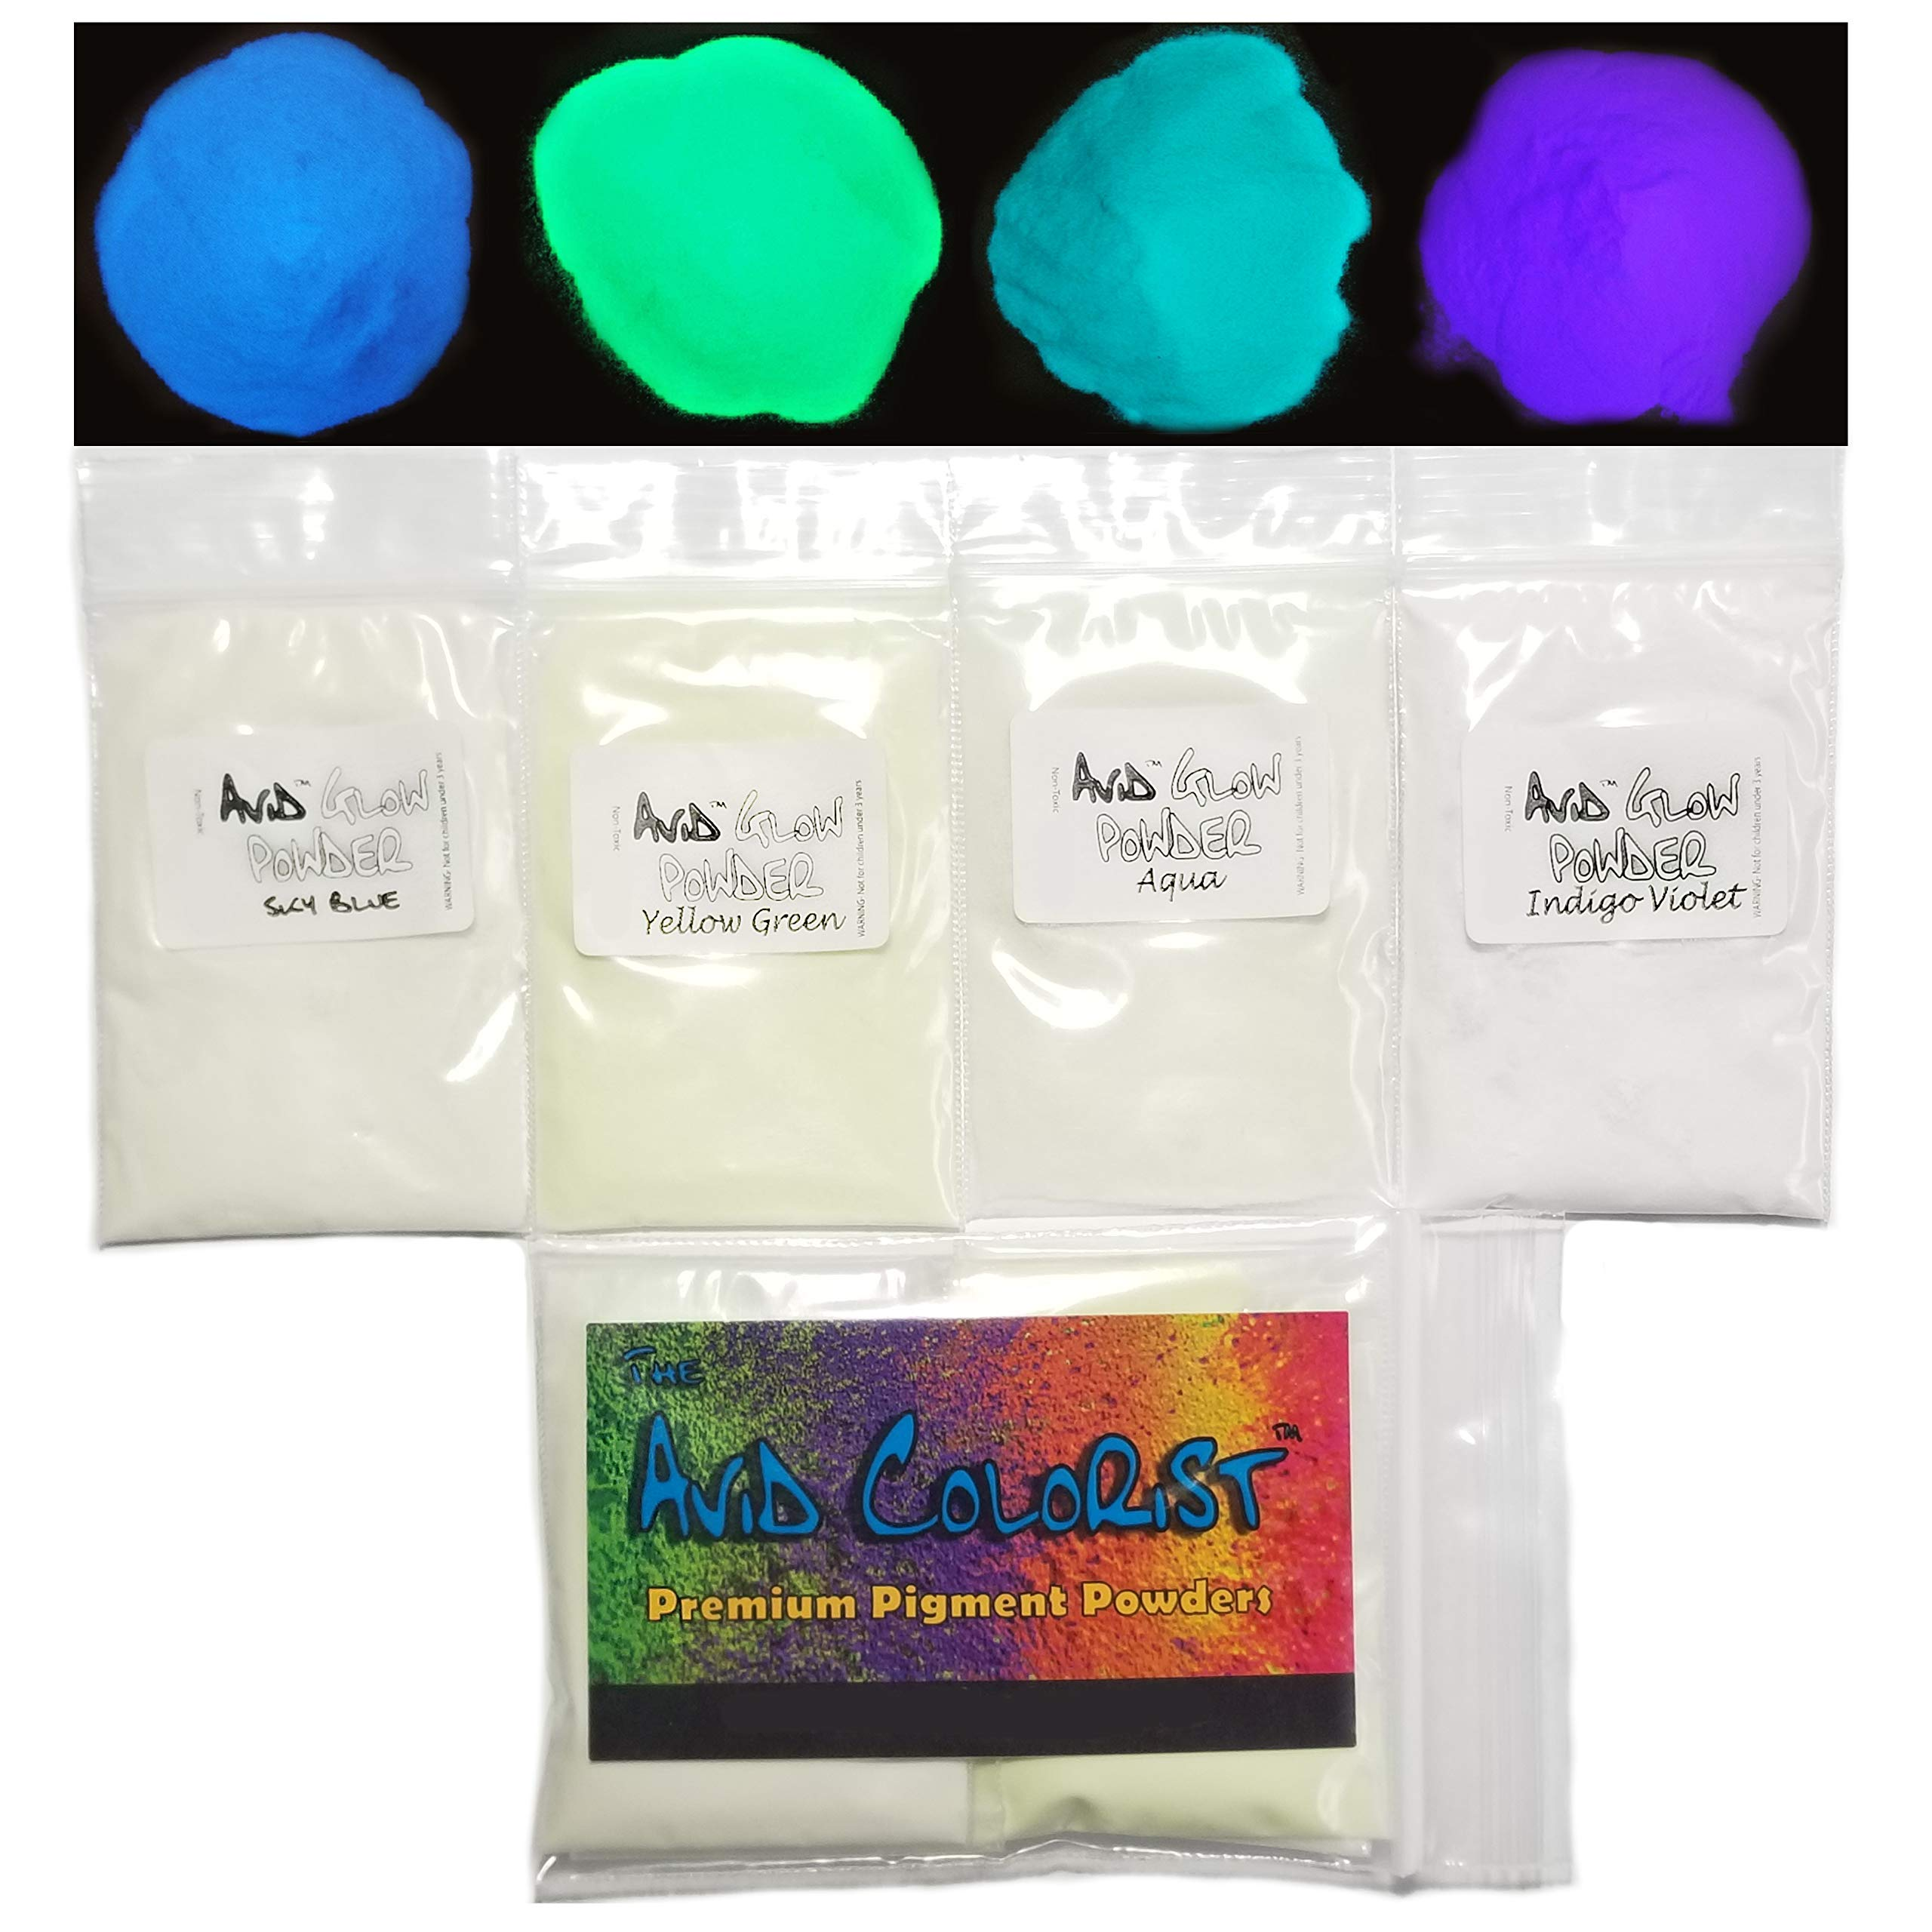 Glow in The Dark Pigment Powder - Neutral in Daylight; 4 Color Glow Powder Pack 15g Each; Sky Blue, Yellow Green, Aqua, Indigo Violet for Resin, Epoxy, Slime, Nail Polish, Paint by The Avid Colorist